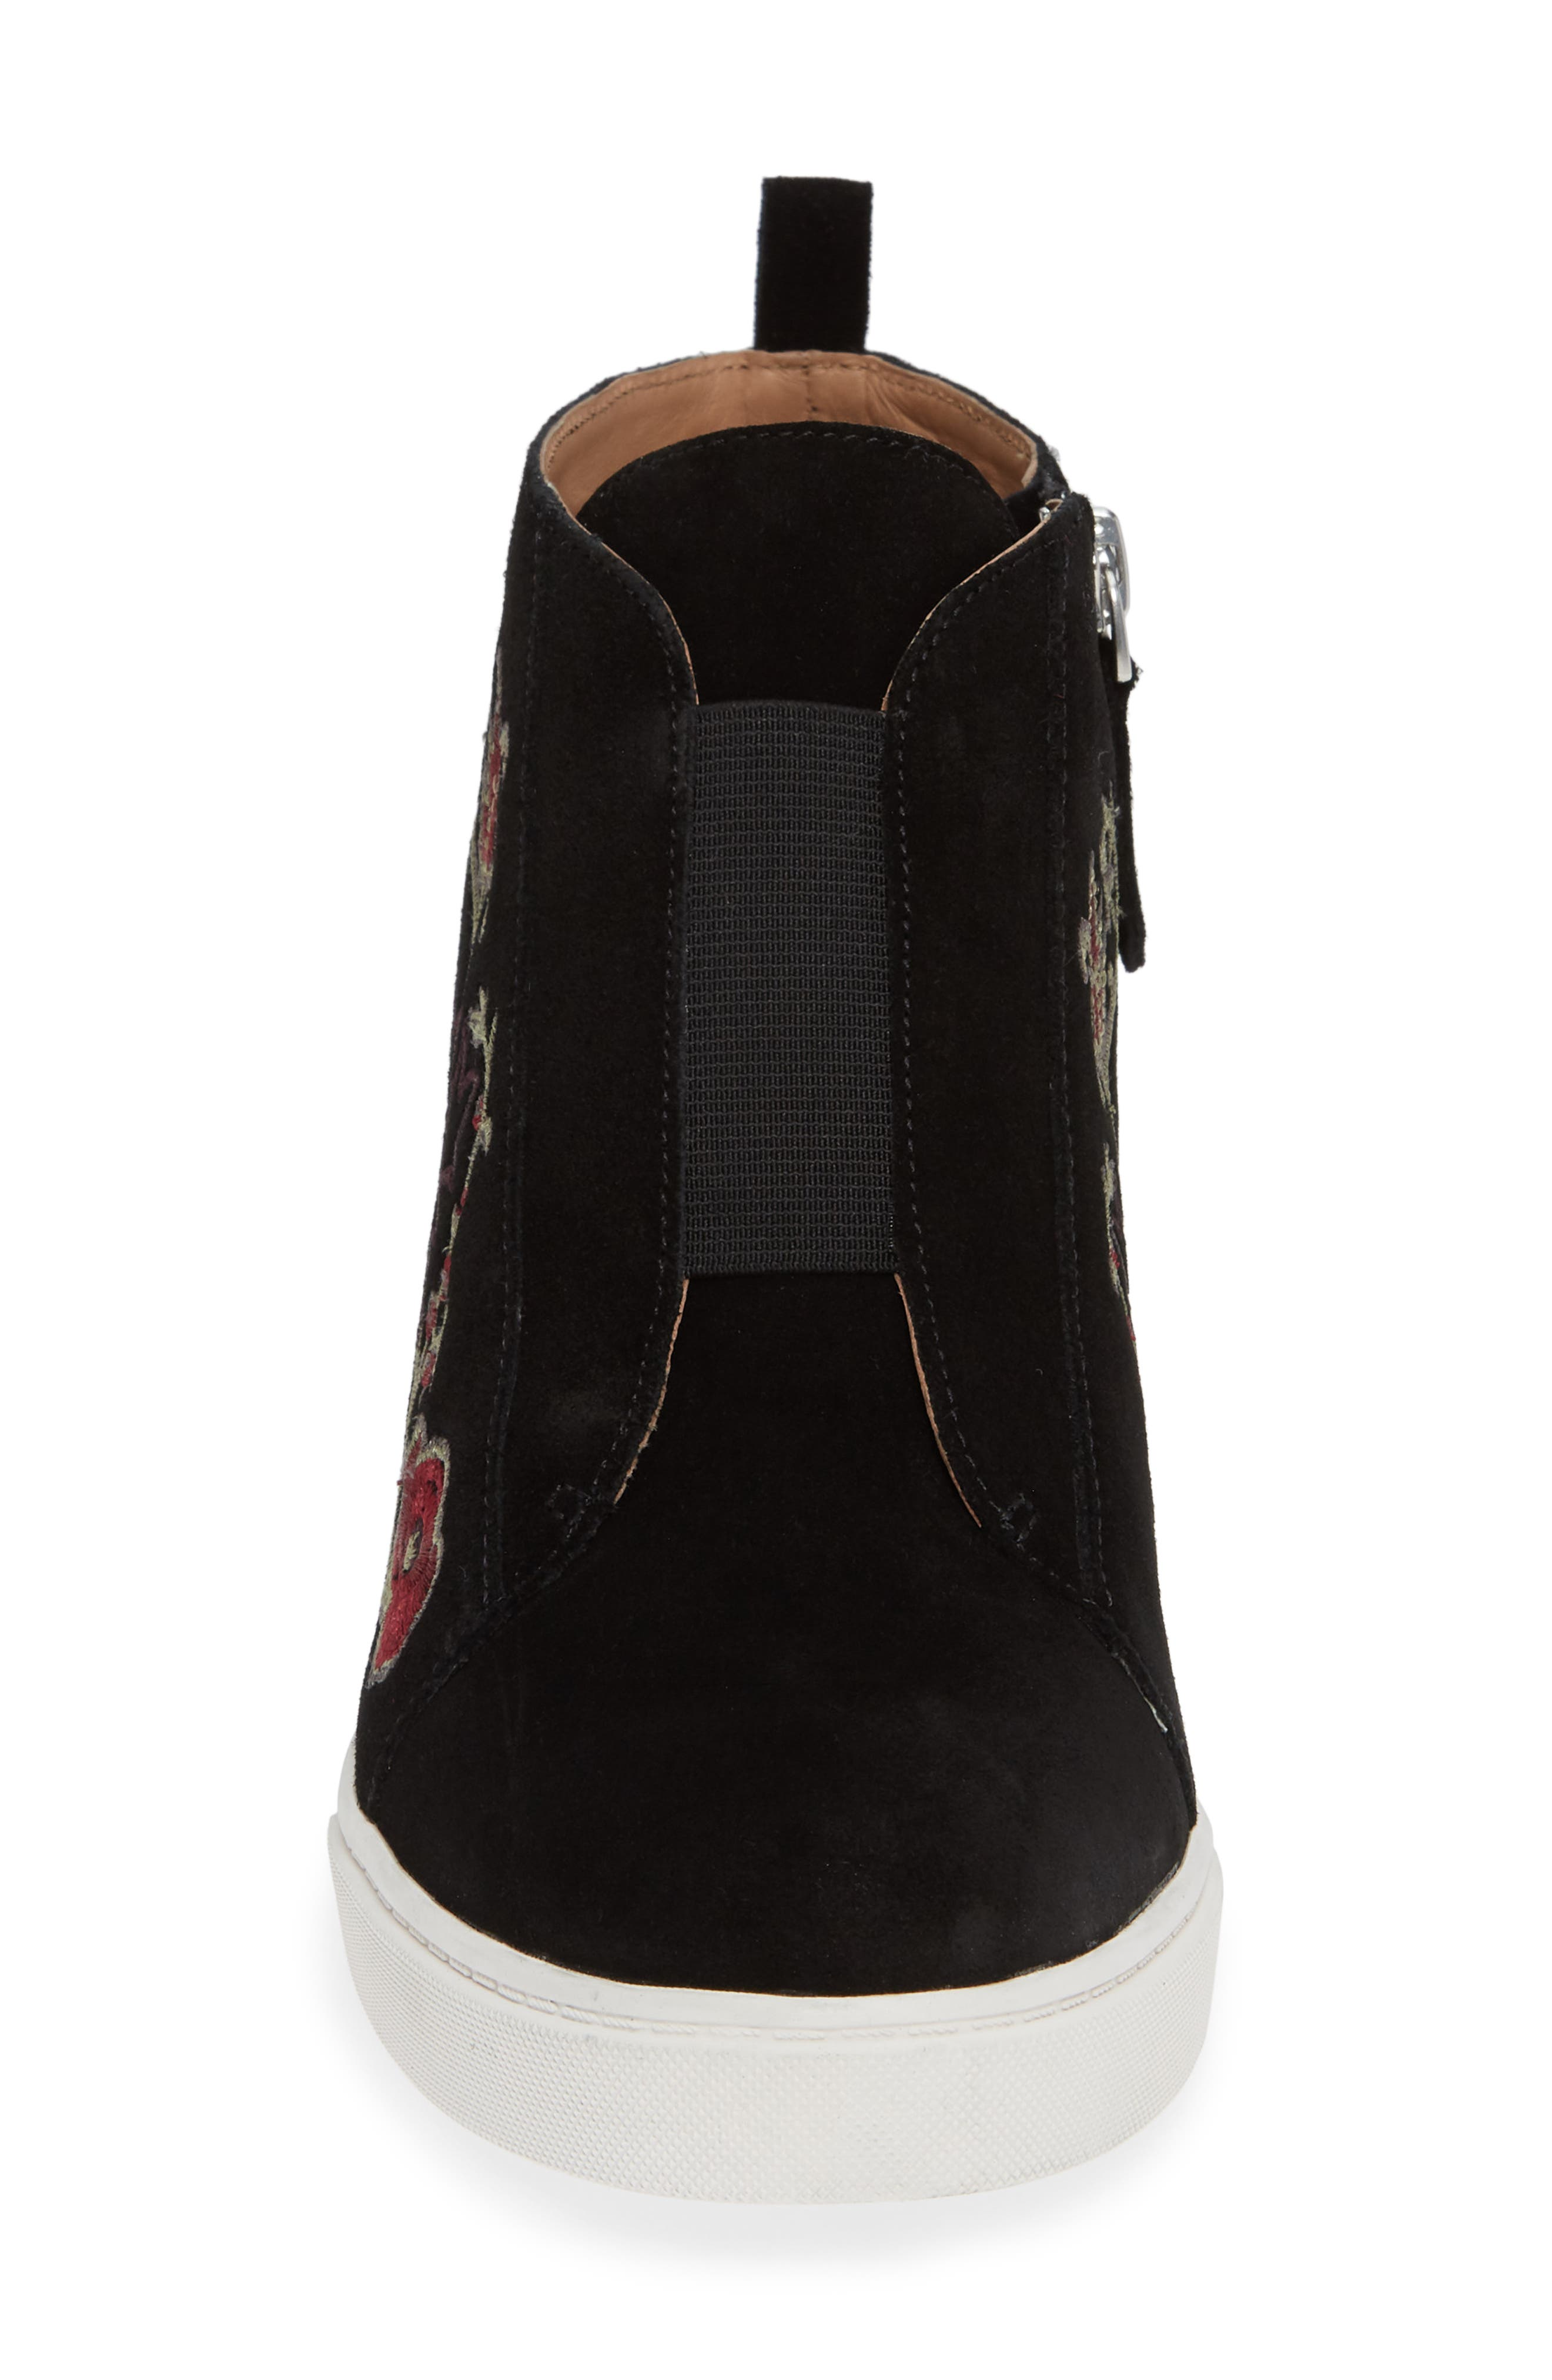 LINEA PAOLO, Felicia II Wedge Bootie, Alternate thumbnail 4, color, BLACK/ BLACK EMBROIDERY SUEDE